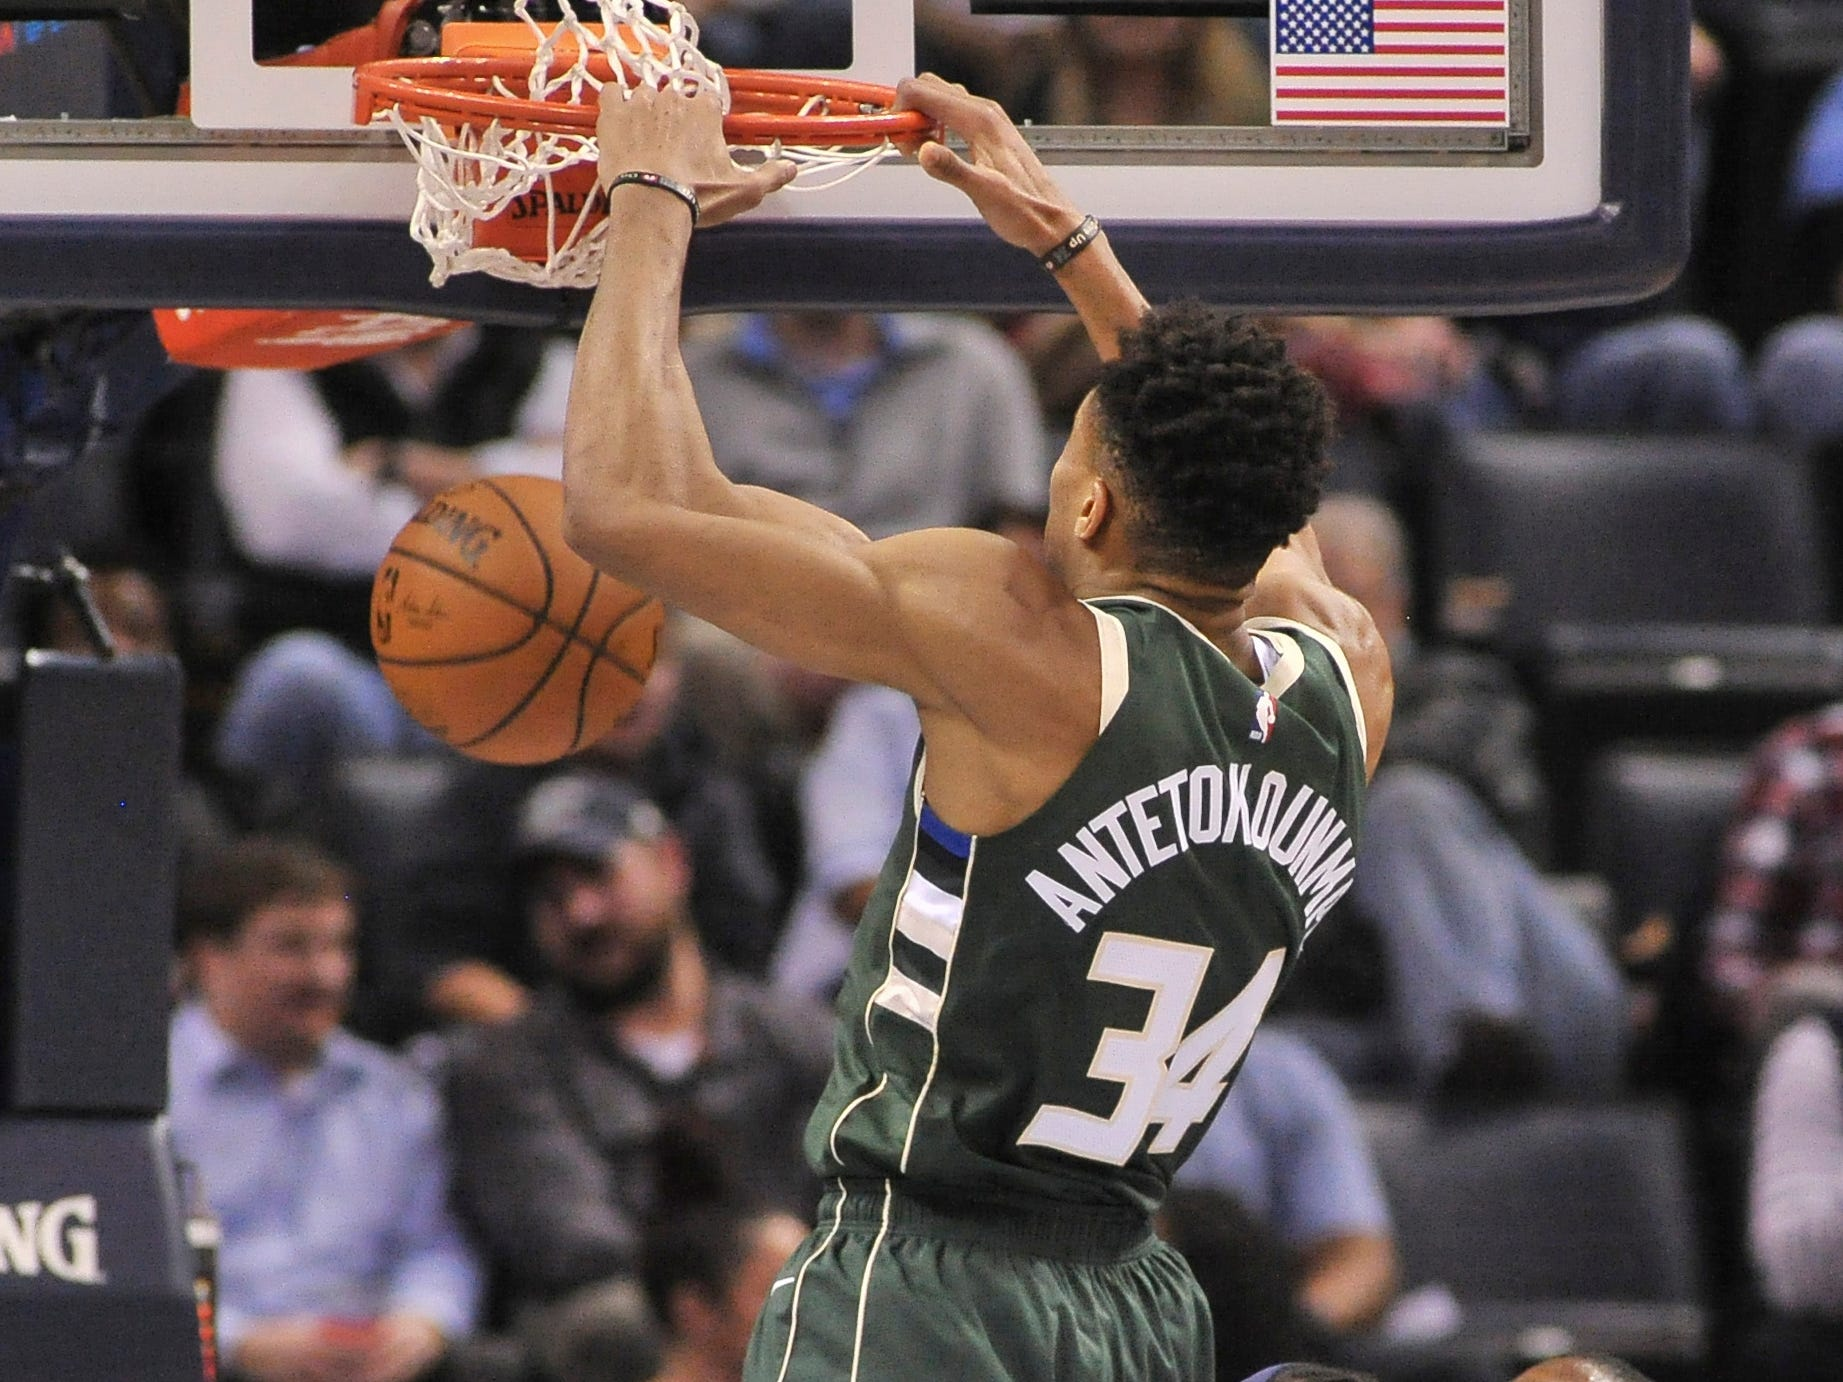 Jan. 16: Bucks forward Giannis Antetokounmpo (34) throws down the two-handed slam during the first half against the Grizzlies in Memphis.